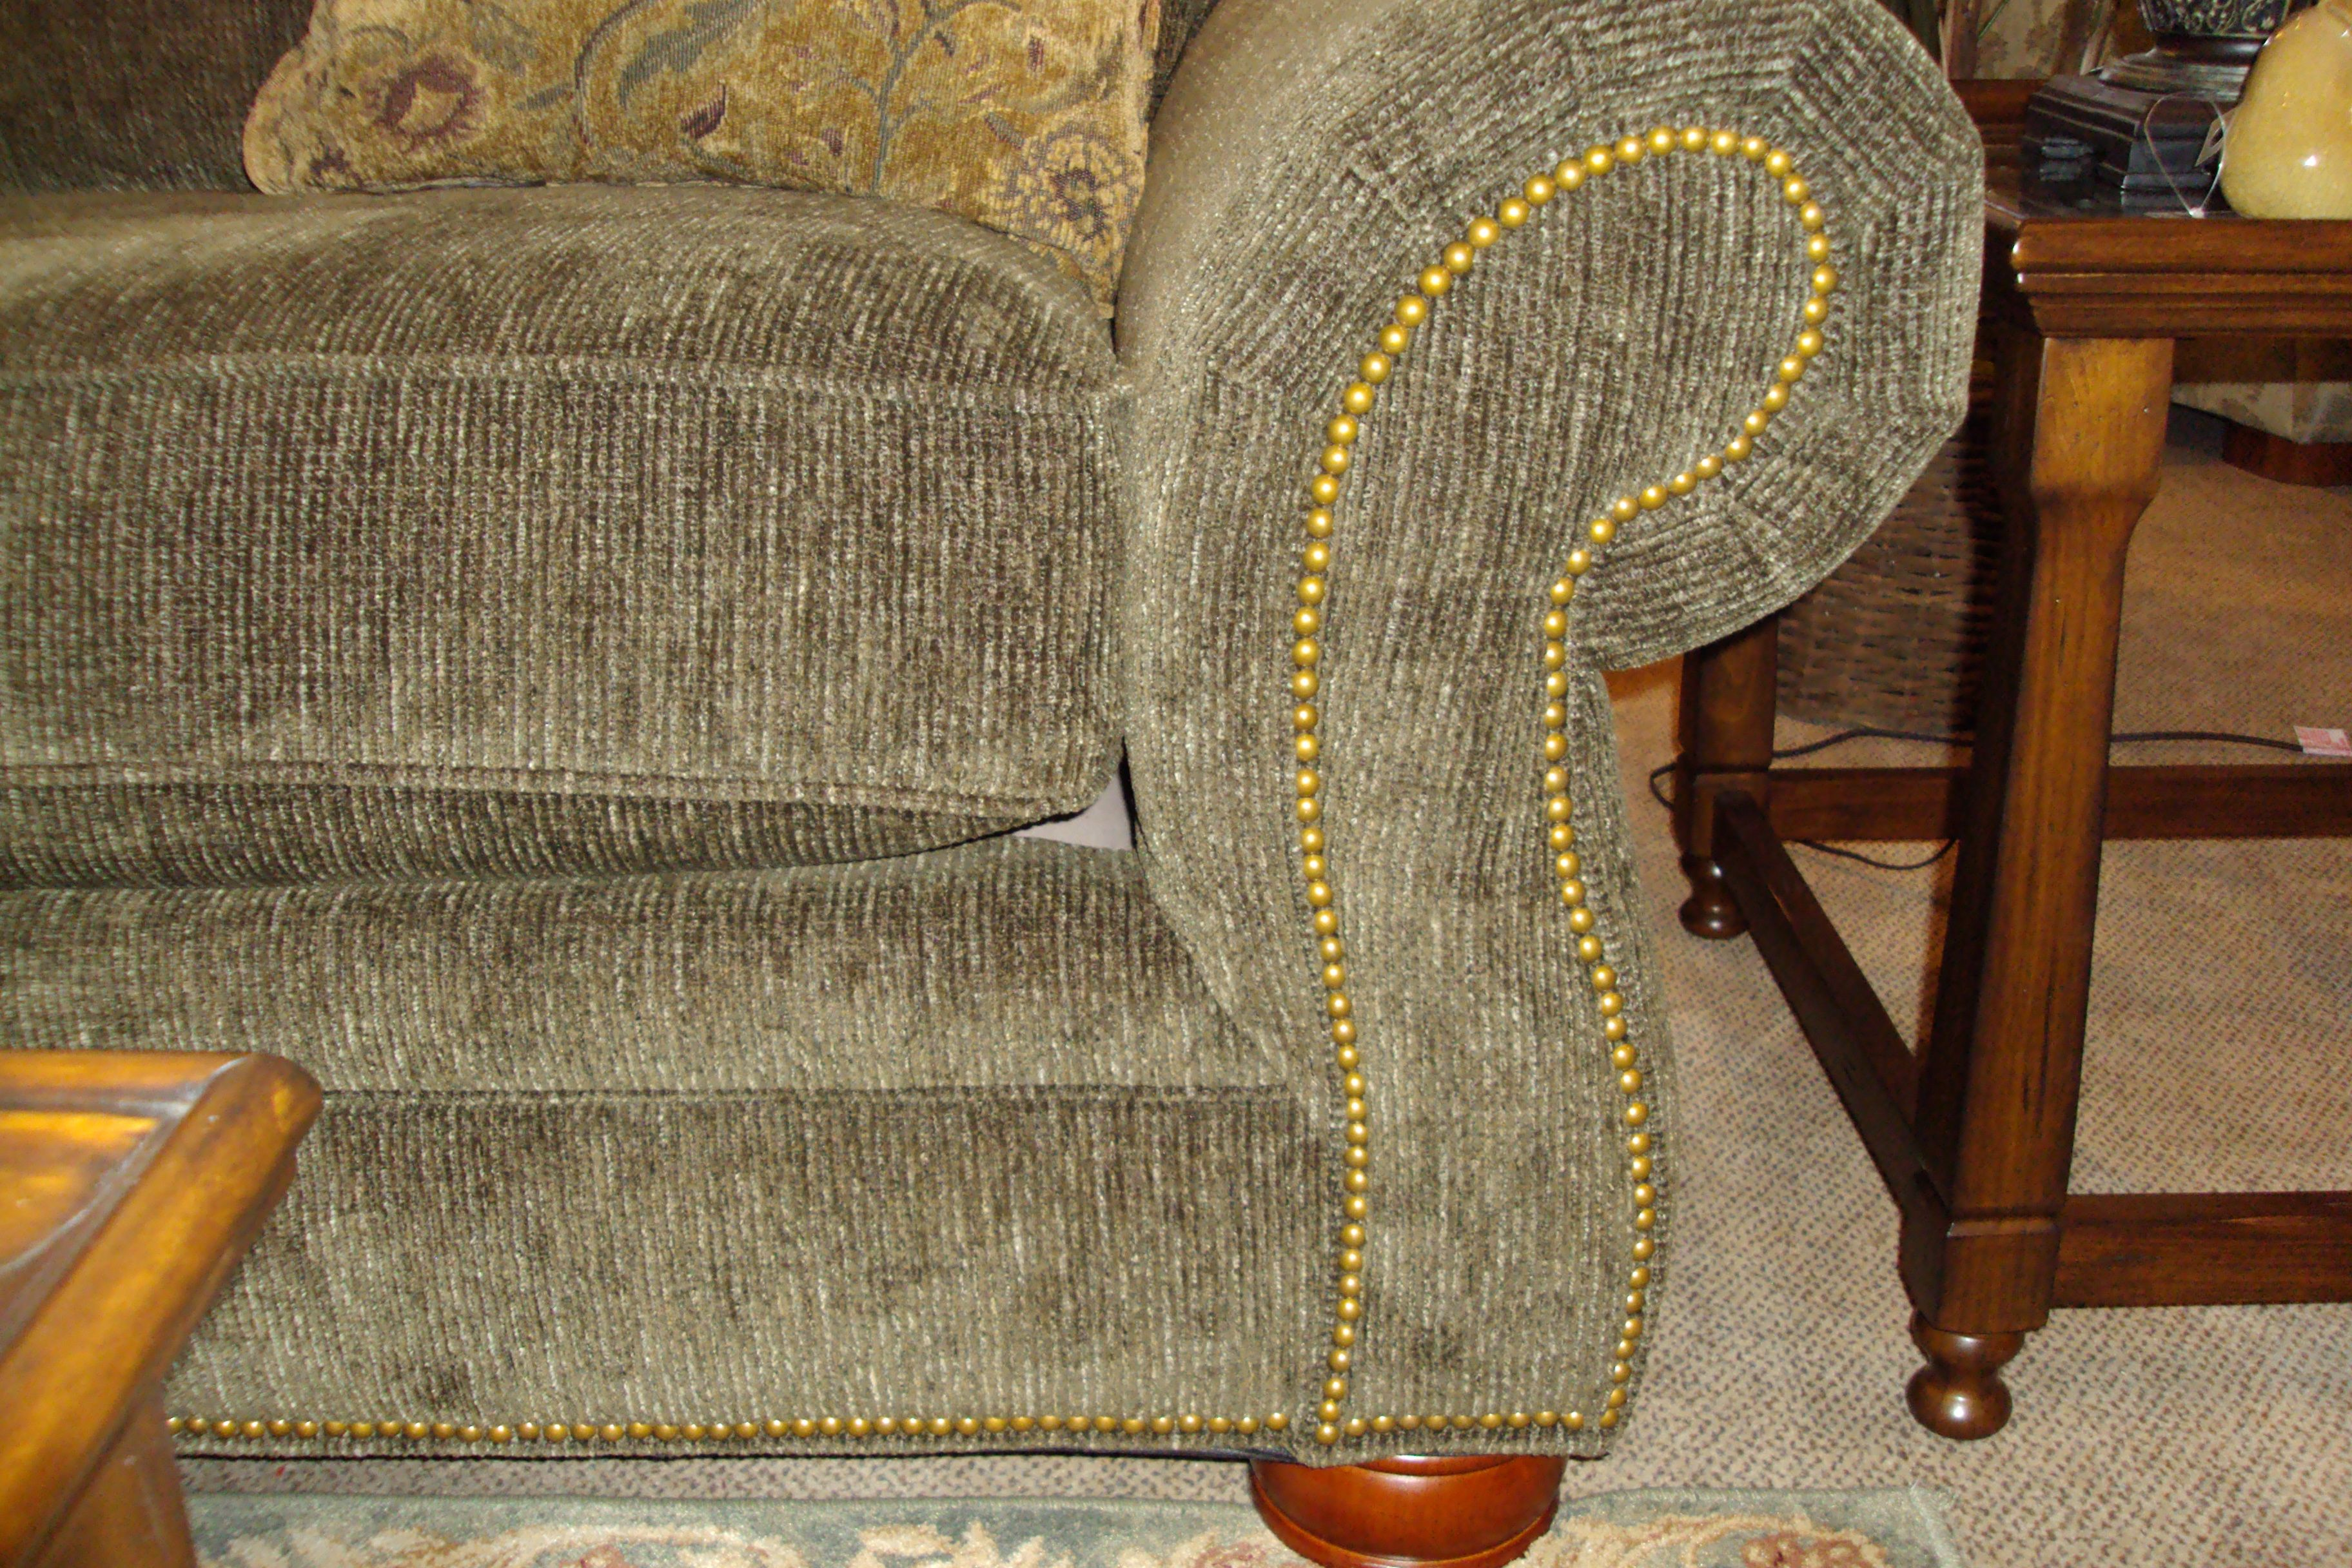 Ordinaire Image Result For Antique Sofa Reupholstered